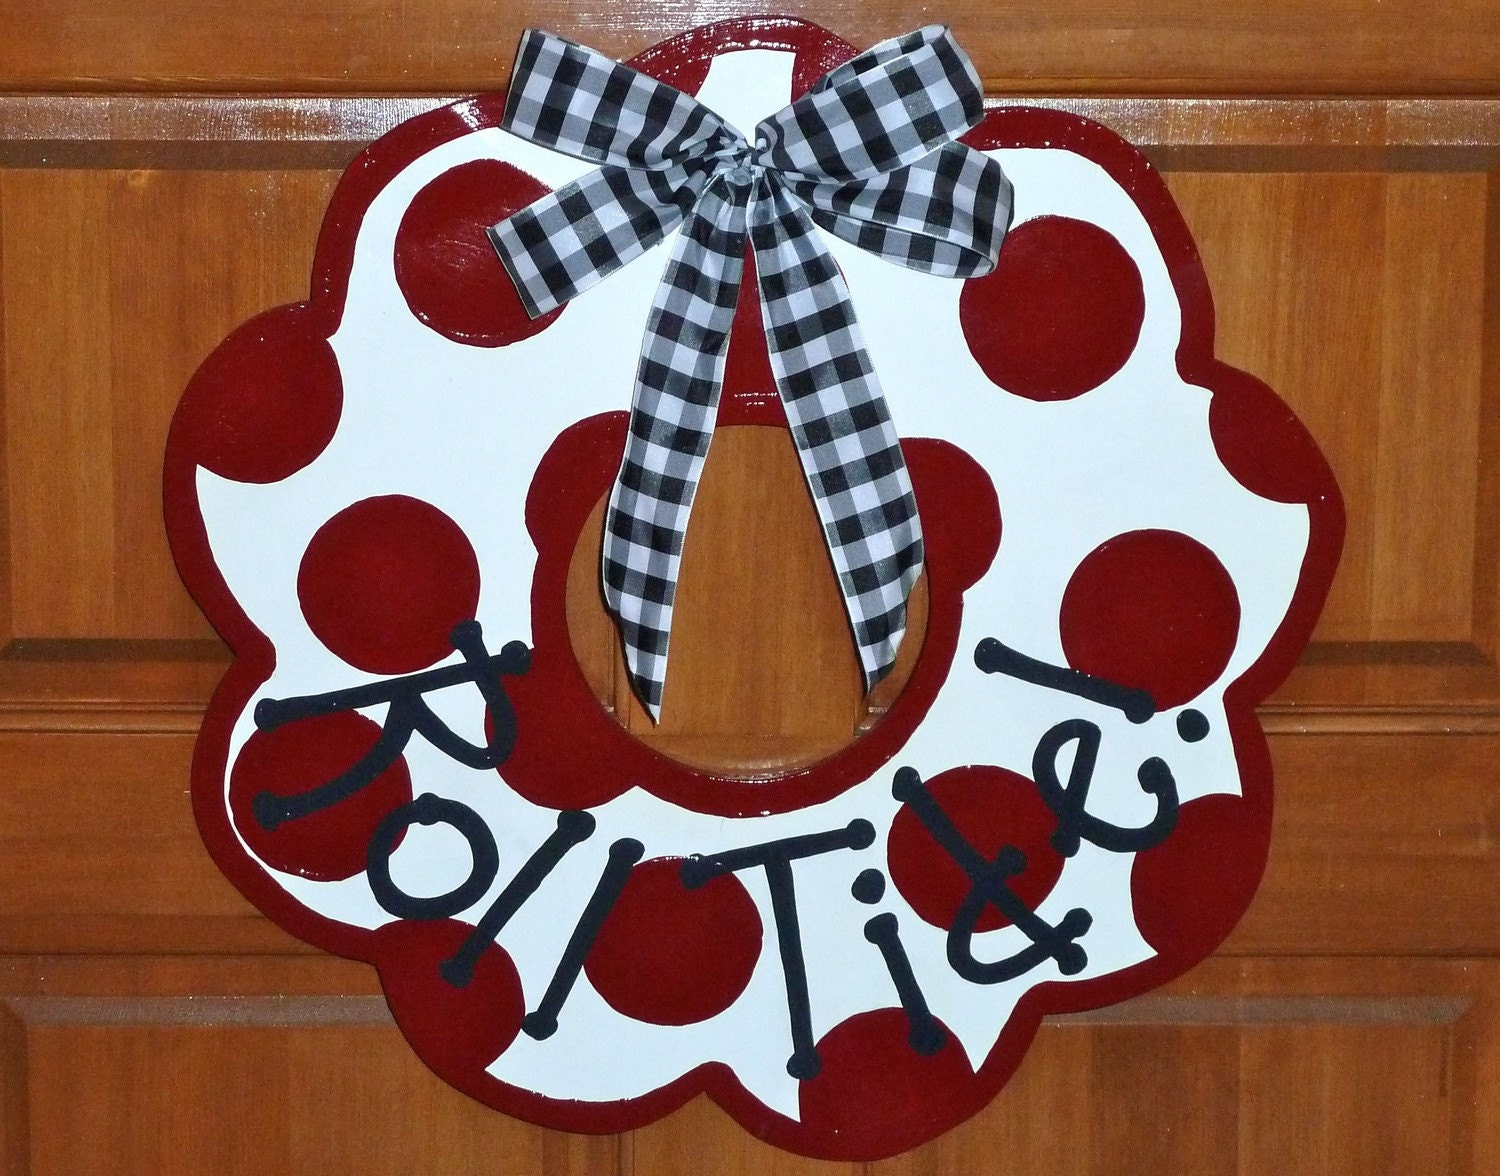 alabama crimson tide wooden door wreath or wall decor. Black Bedroom Furniture Sets. Home Design Ideas